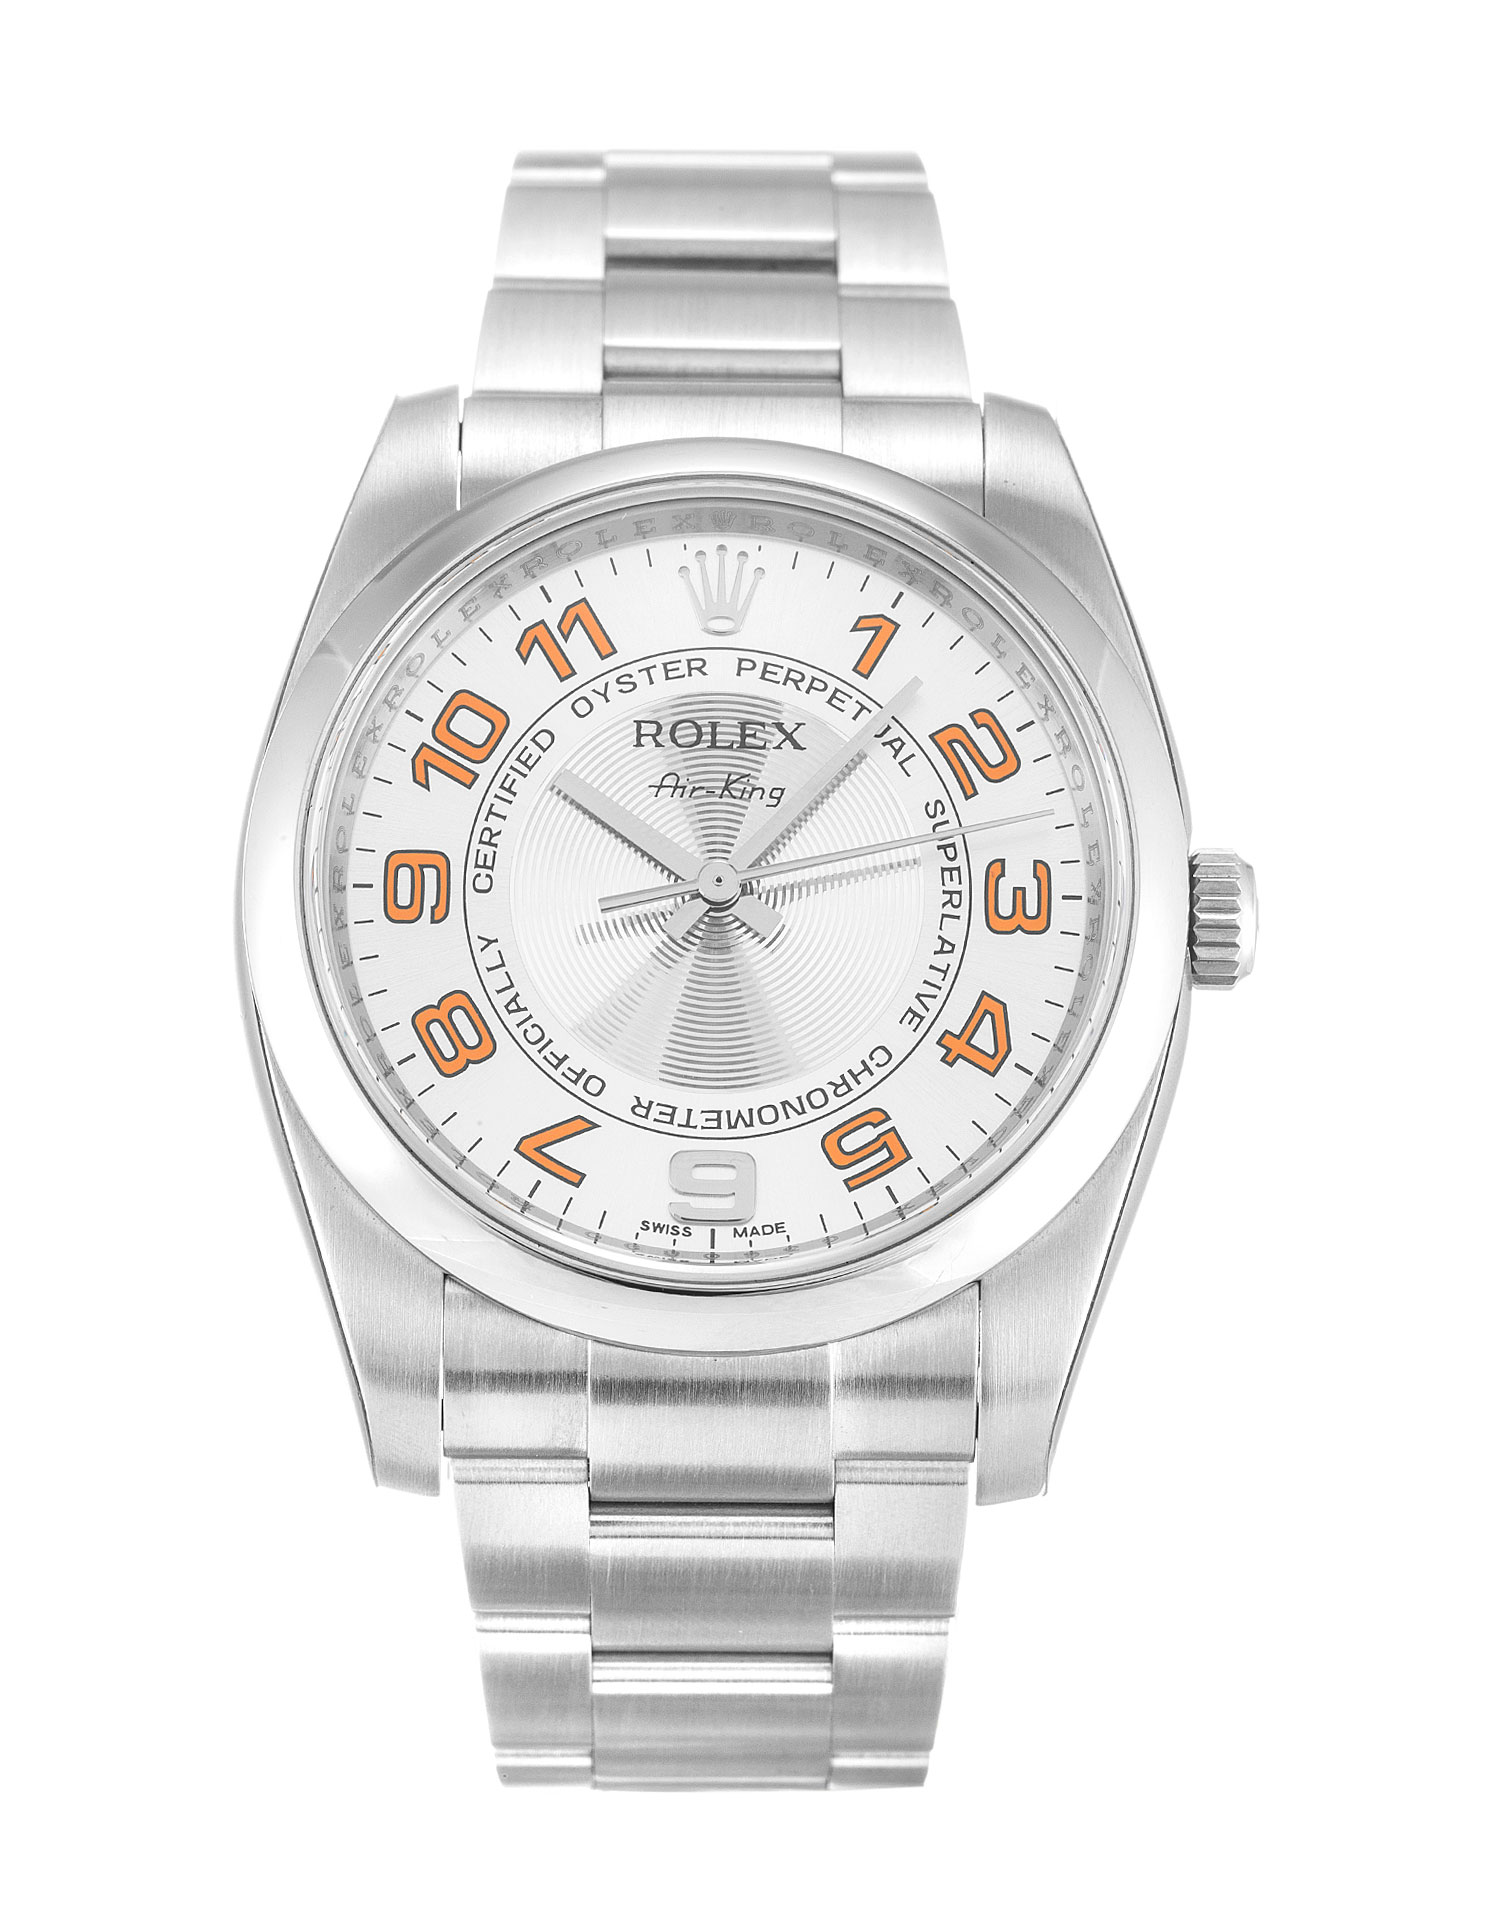 Rolex Air-king 114200 Unisex 34 Mm Steel Case Automatic Movement – iapac.to